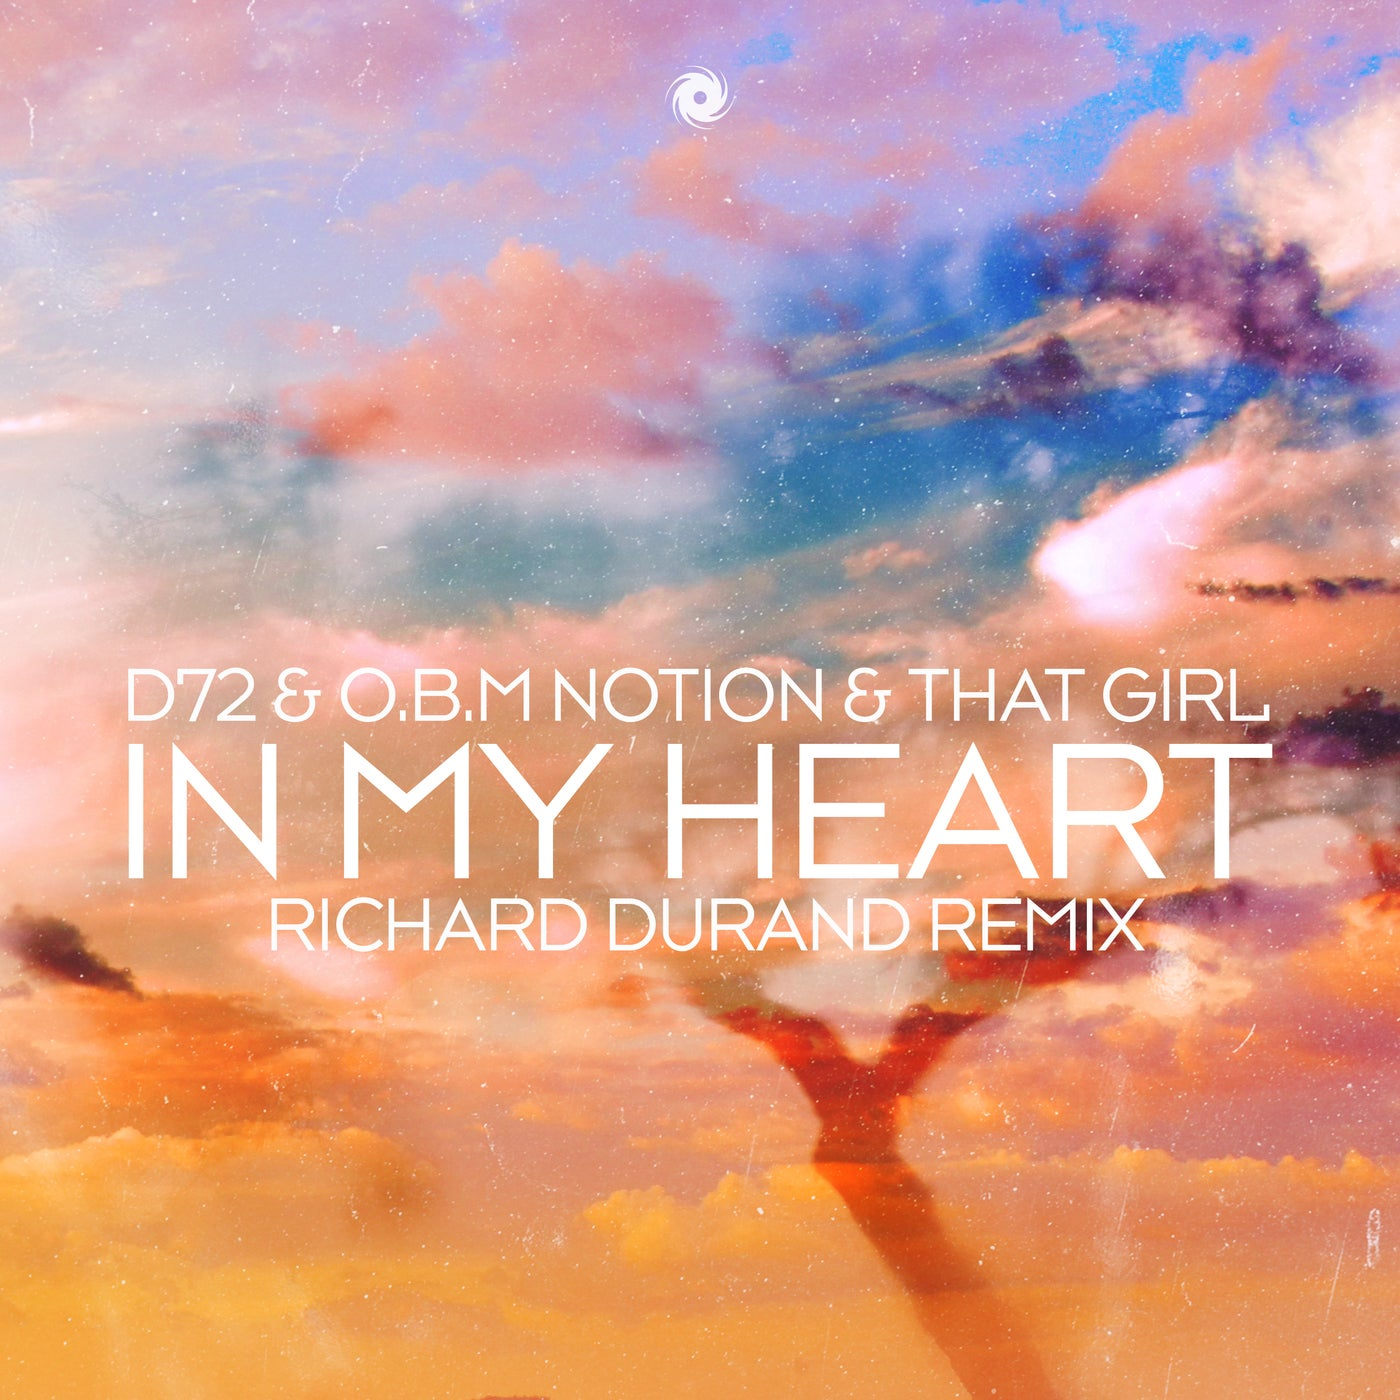 In My Heart (Richard Durand Extended Remix)